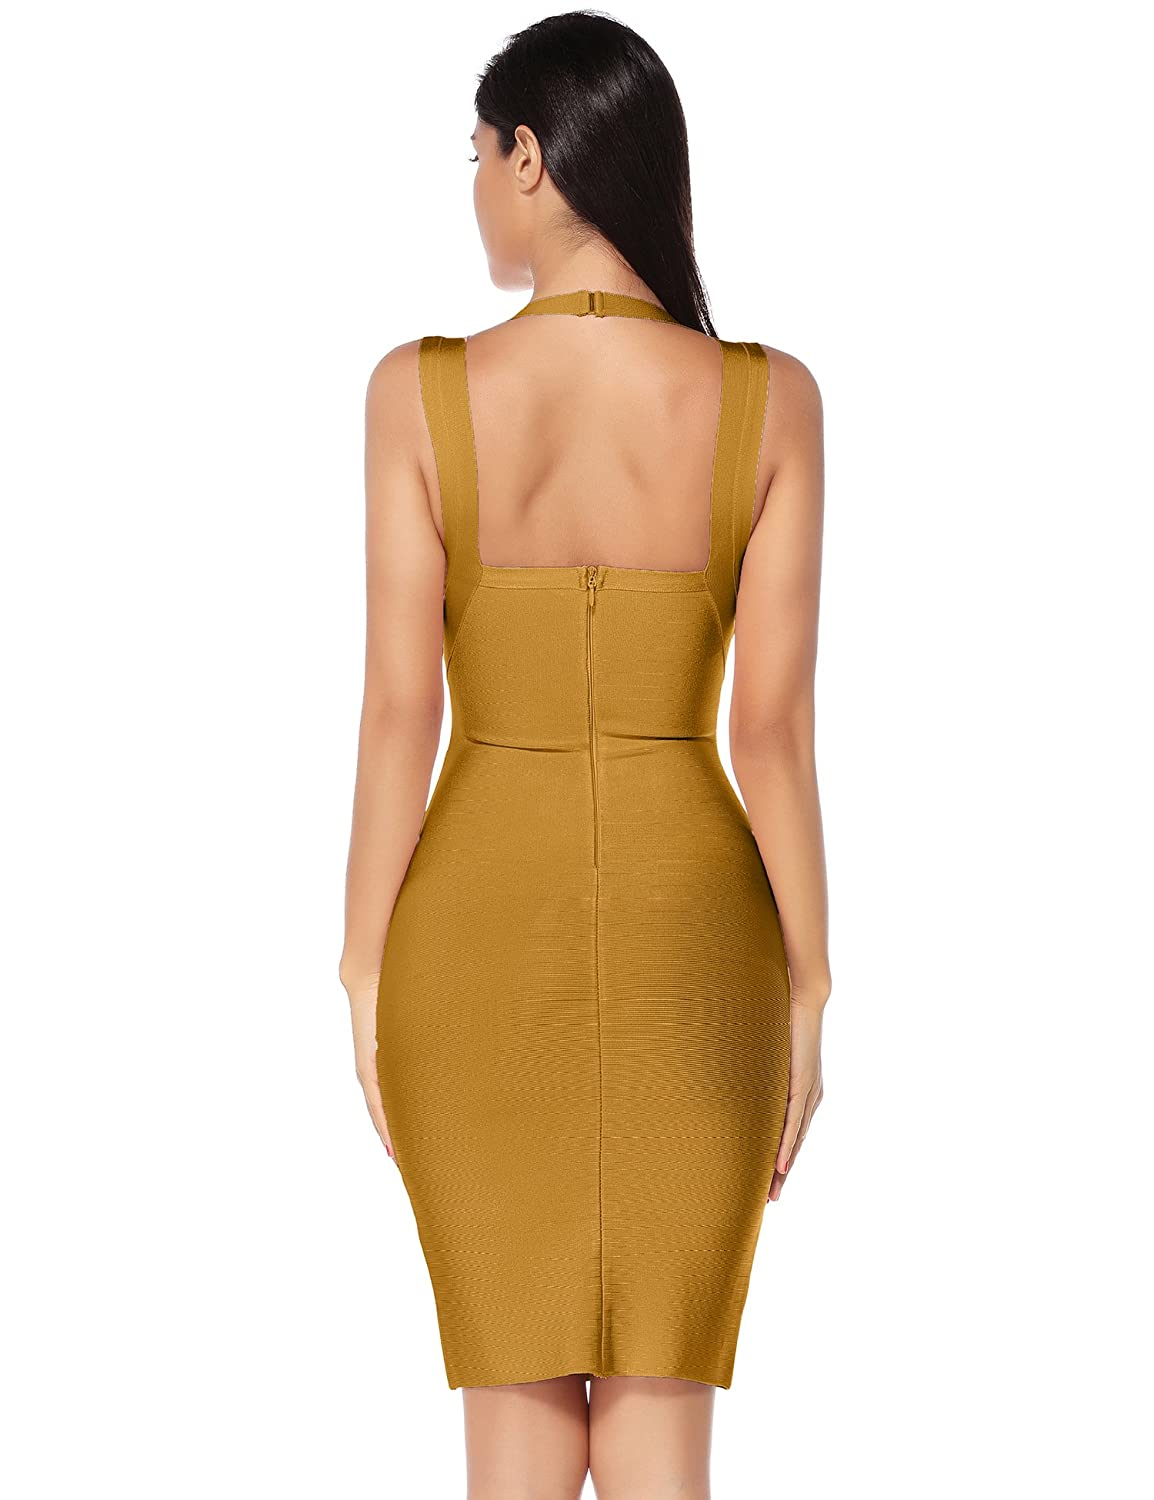 Meilun Womens Bandage Dress Square Neck Bodycon Club Dress